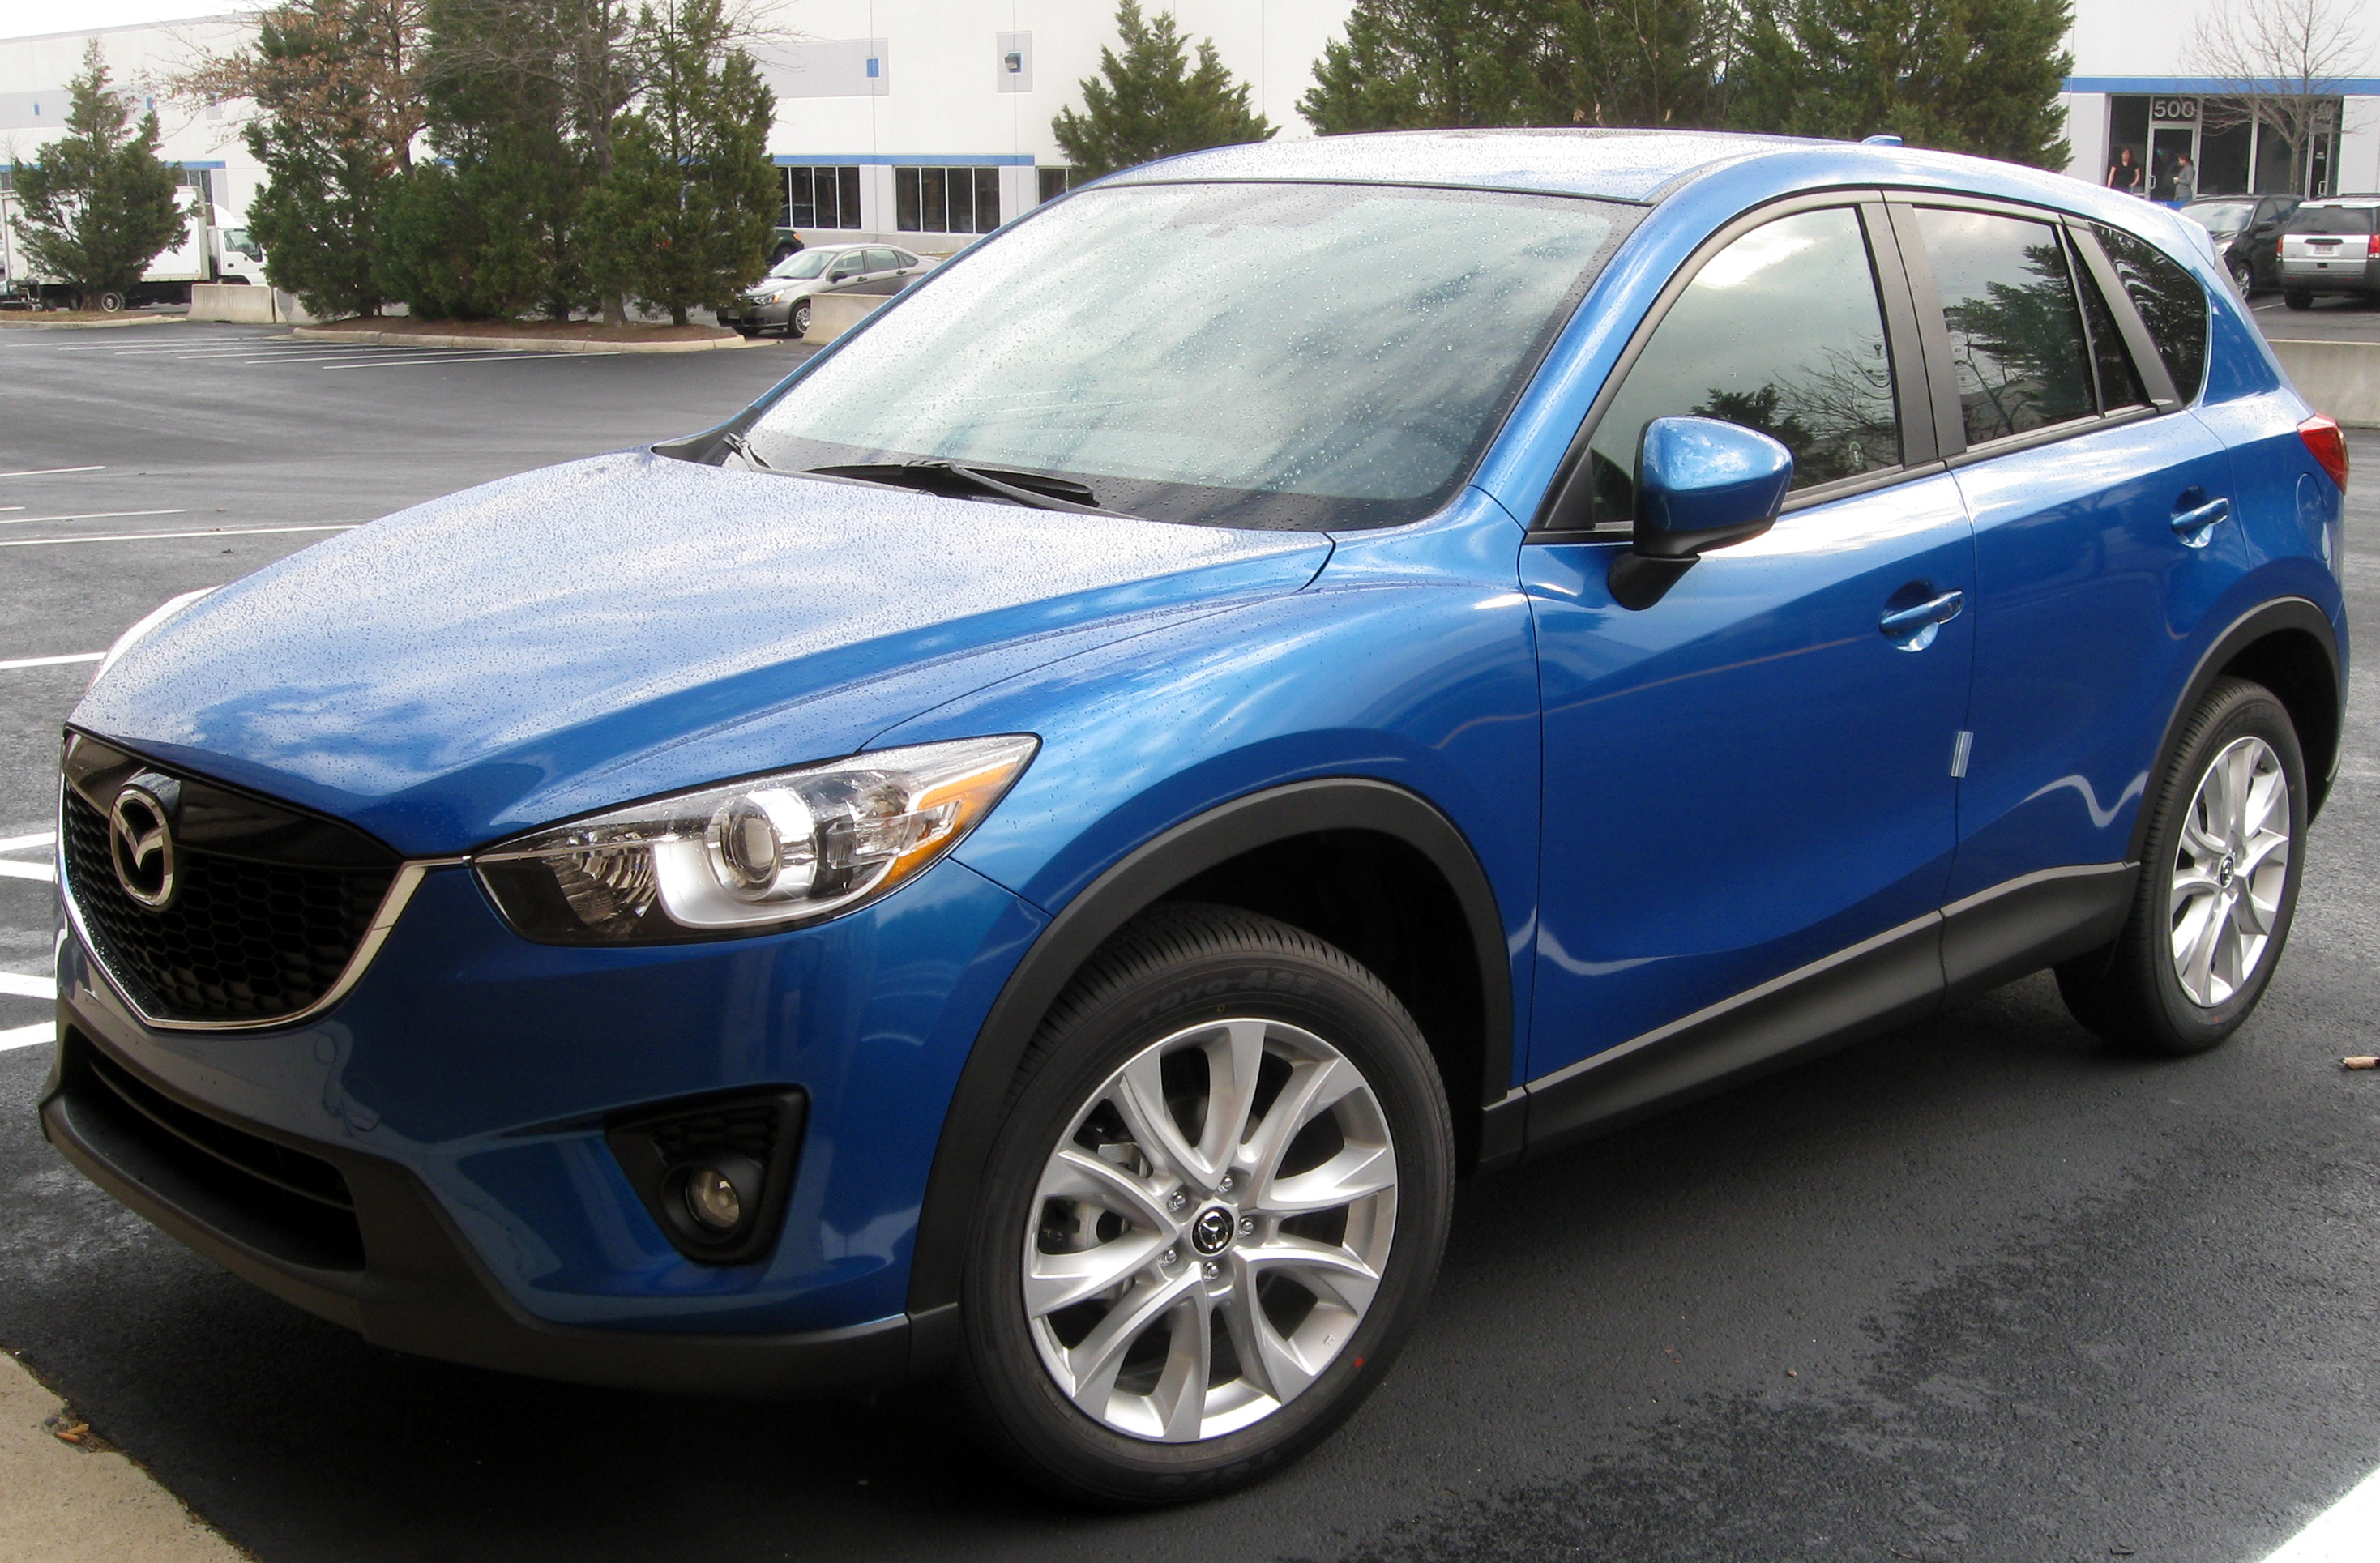 https://upload.wikimedia.org/wikipedia/commons/b/bf/2013_Mazda_CX-5_Grand_Touring_--_02-24-2012.jpg